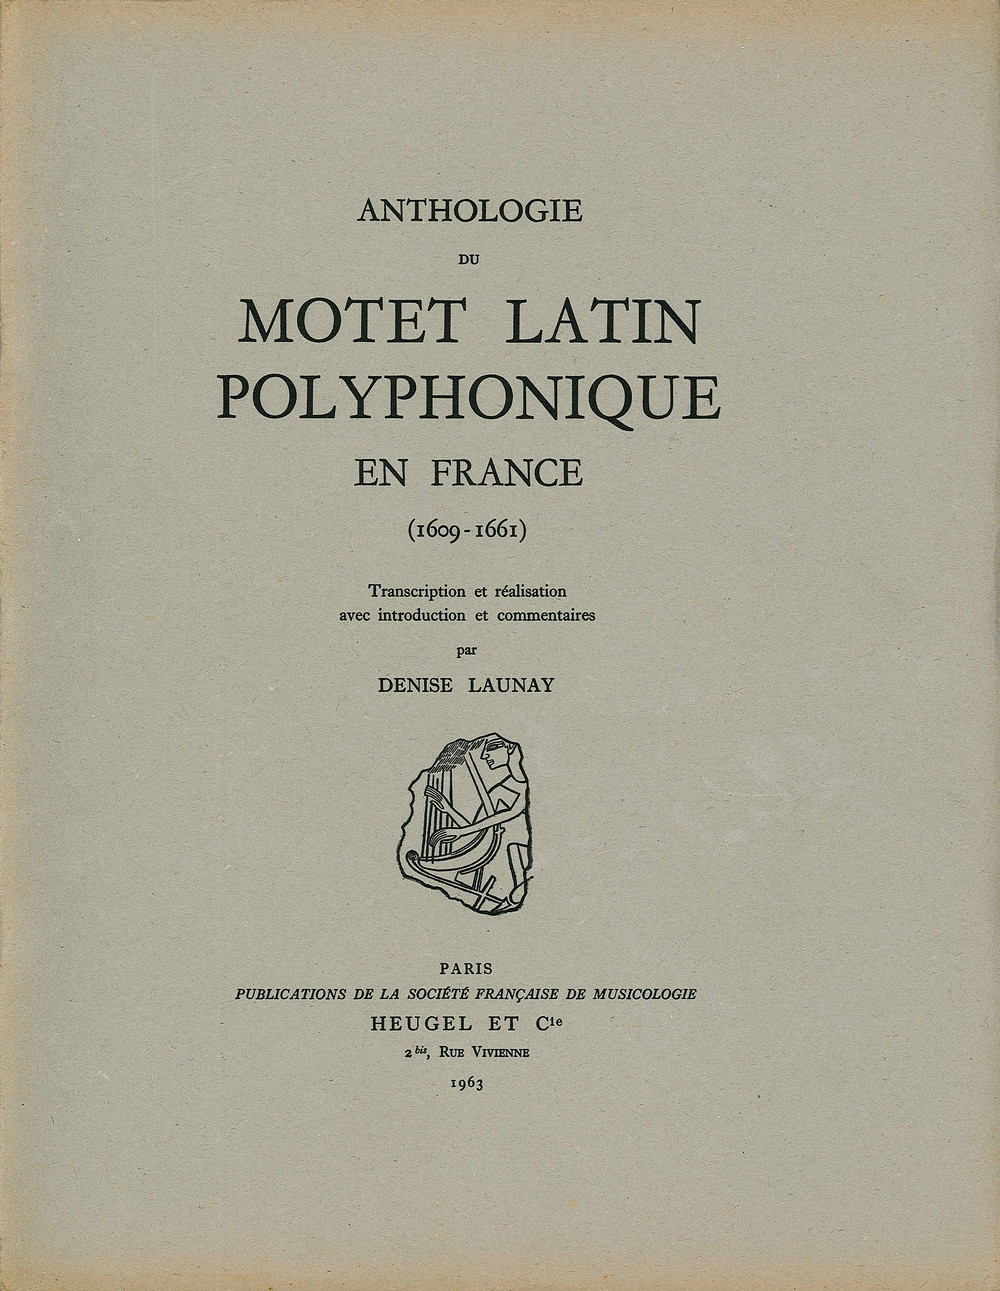 ANTHOLOGIE DU MOTET LATIN POLYPHONIQUE EN FRANCE  (1609-1661)